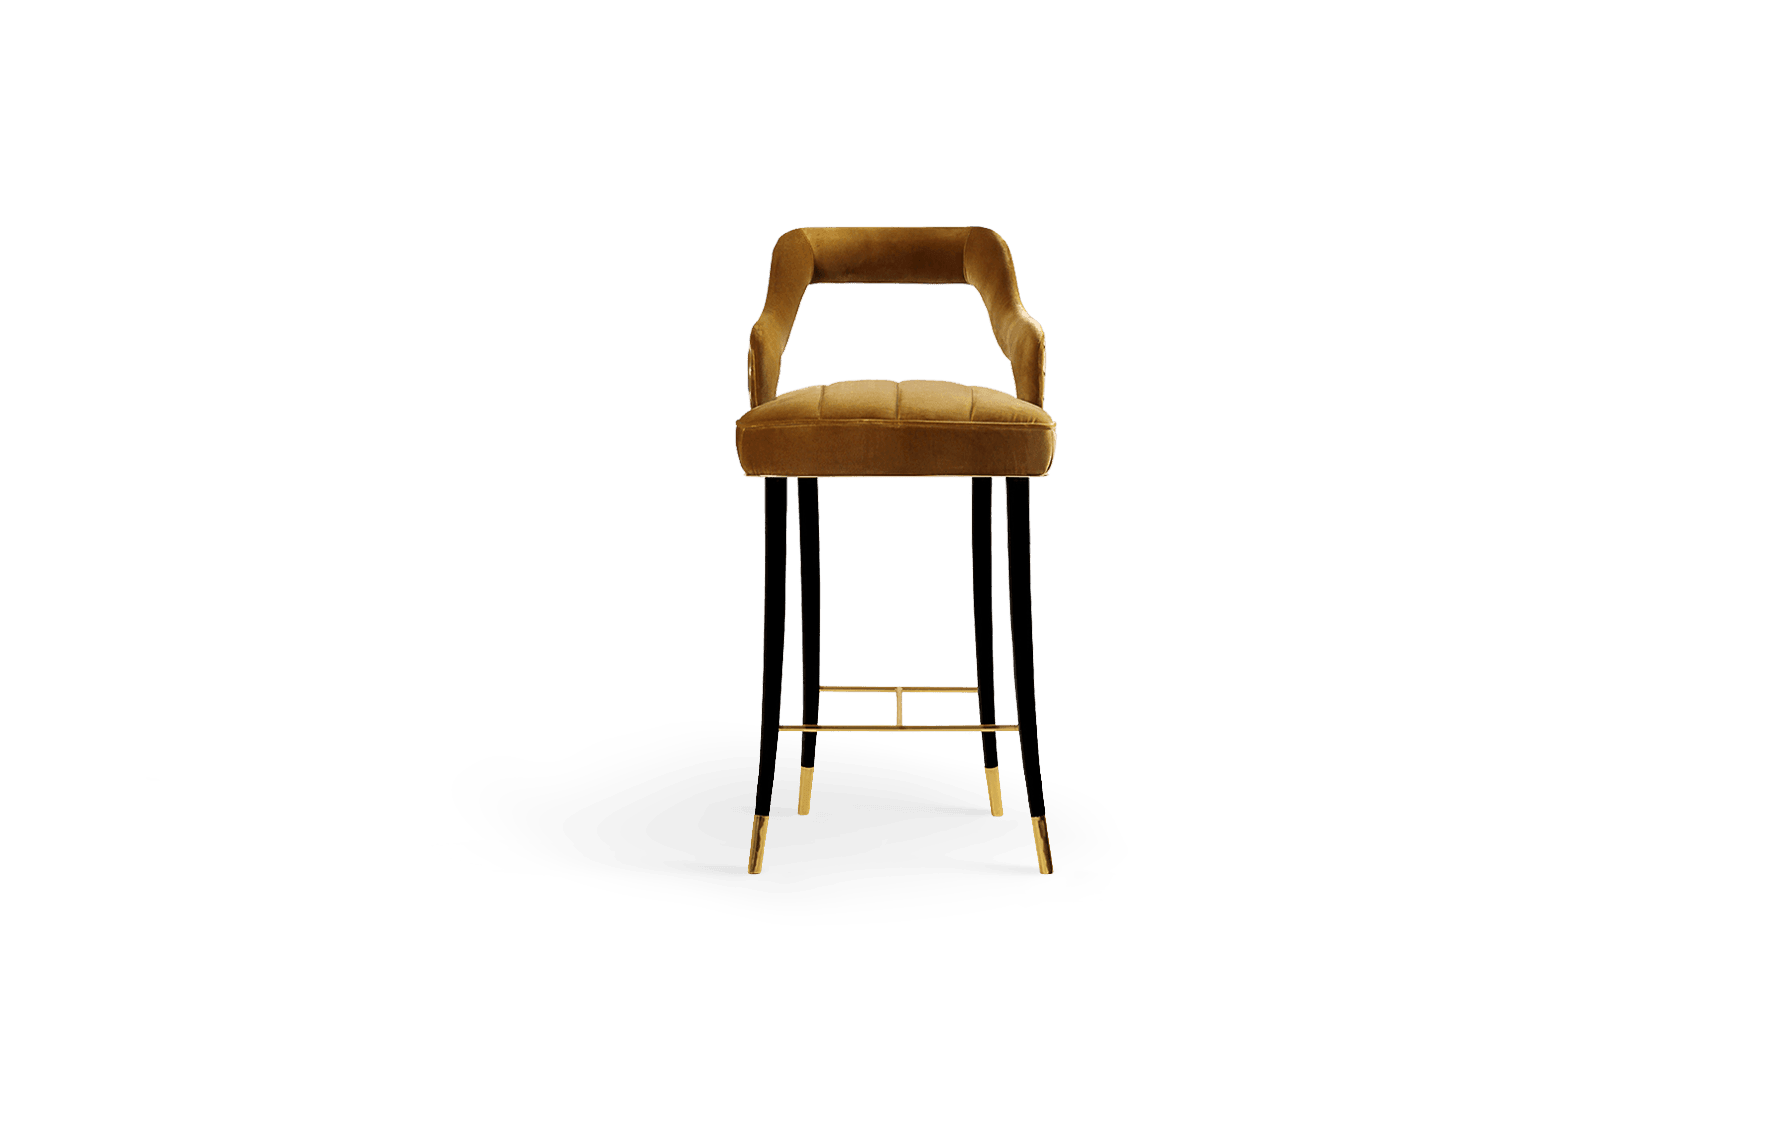 Kelly Mid-Century Modern Dining Chair in Yellow Cotton Velvet